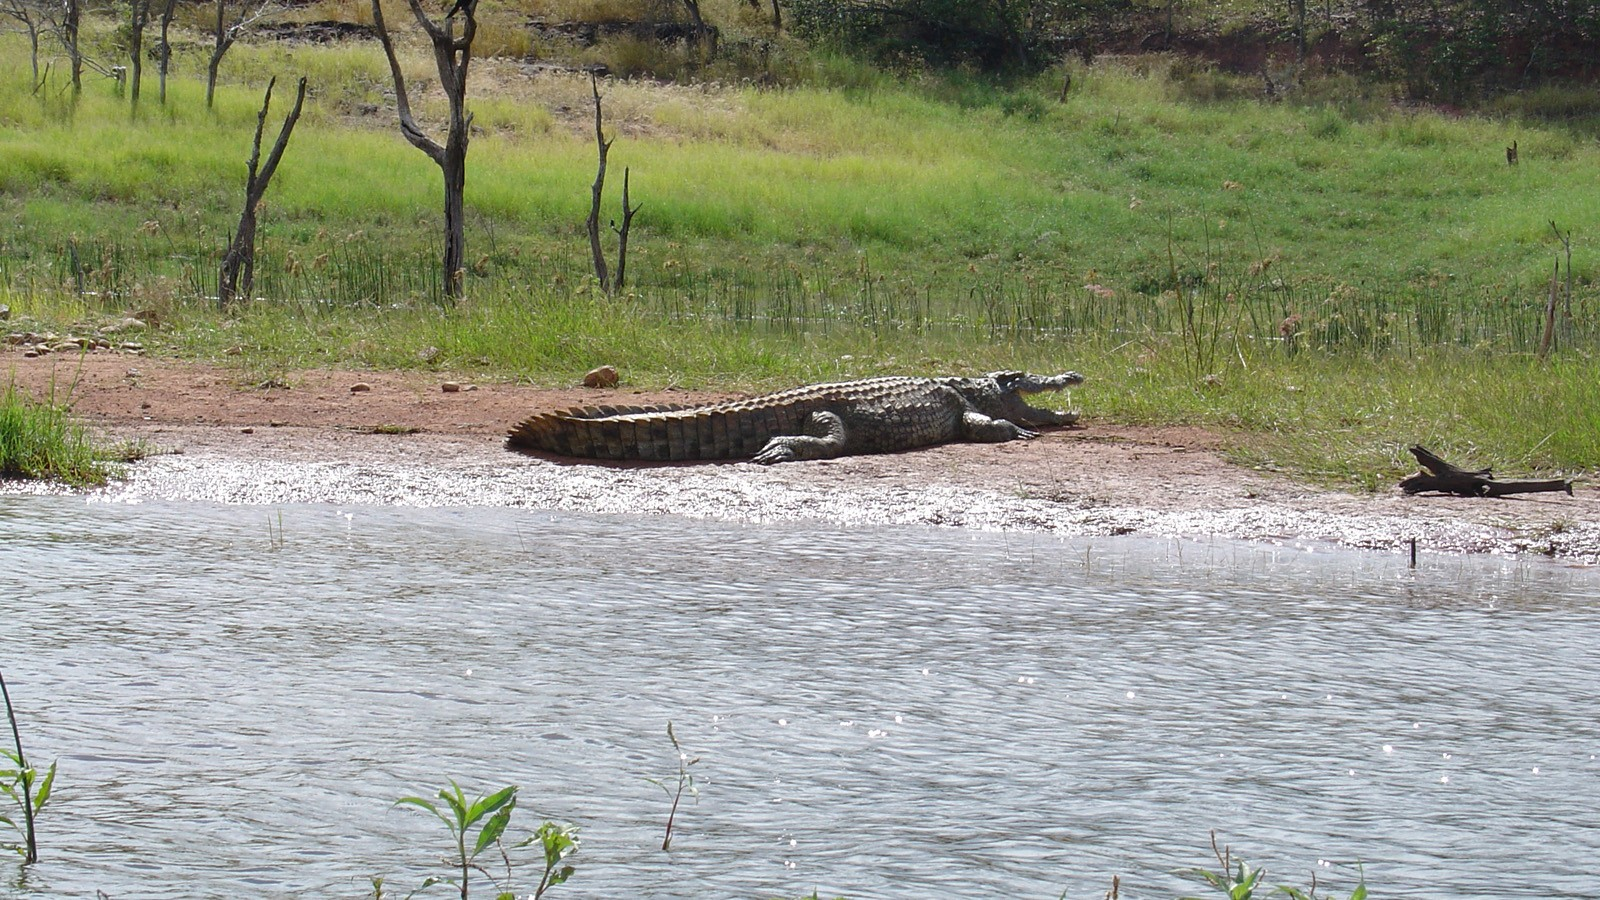 Crocodile in Zimbabwe